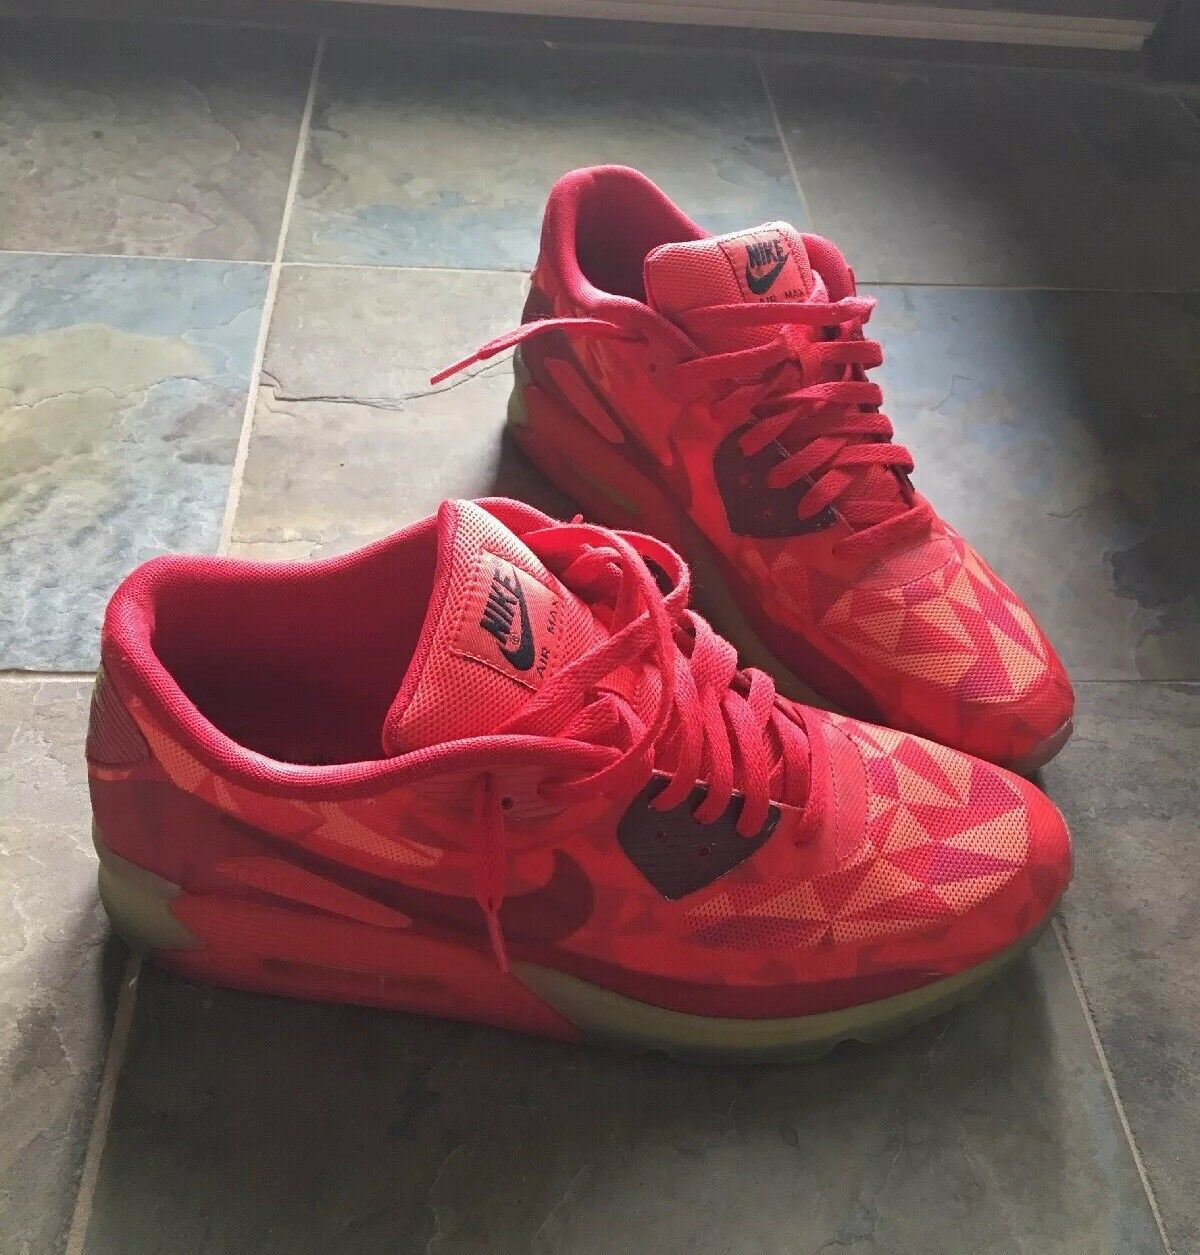 Air Nike 90 Max Red Ice 18b04tndk22389 Athletic Shoes